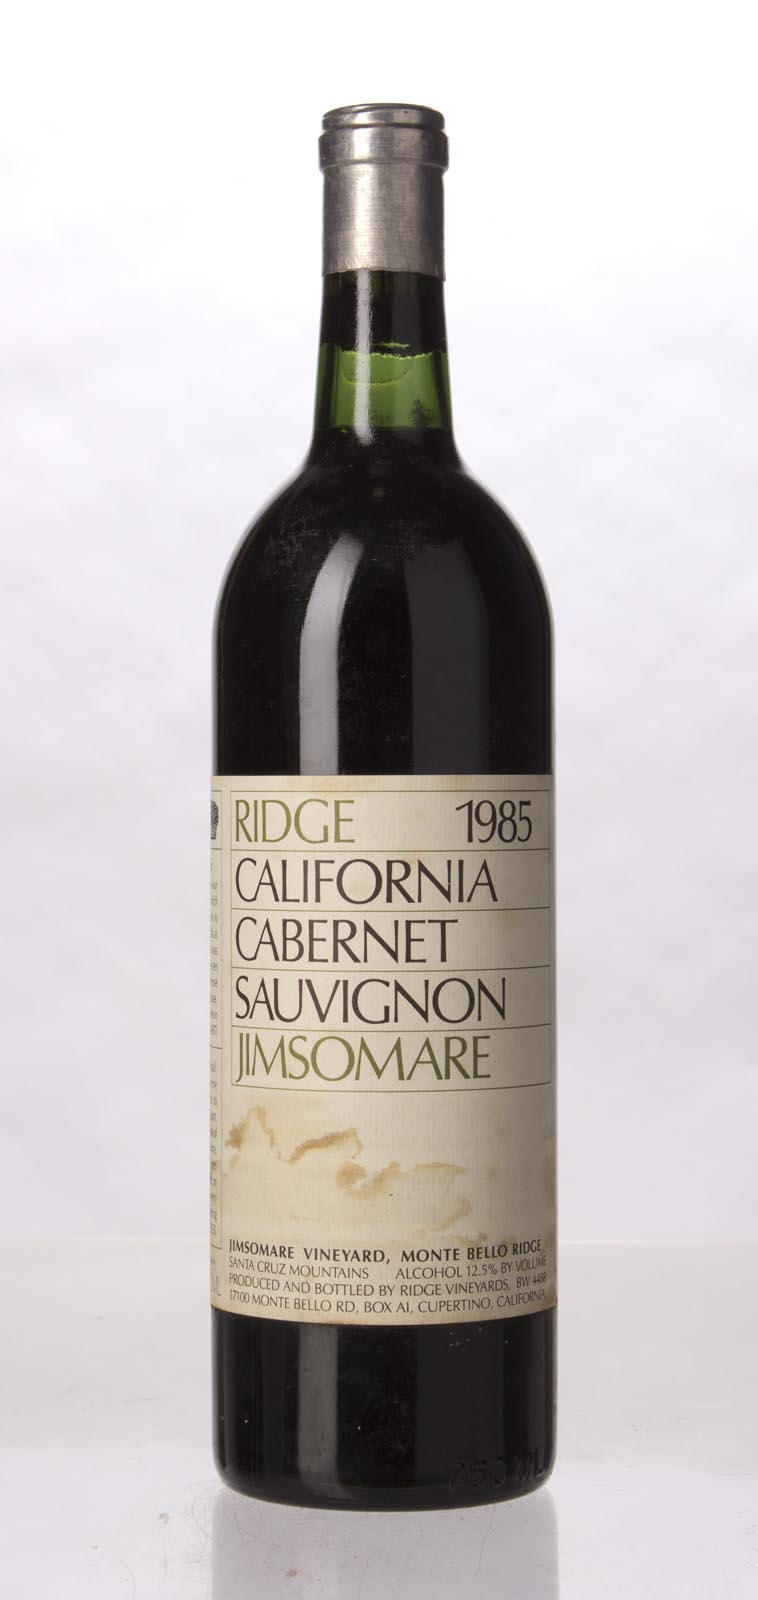 Ridge Cabernet Sauvignon Jimsomare 1985, 750mL () from The BPW - Merchants of rare and fine wines.